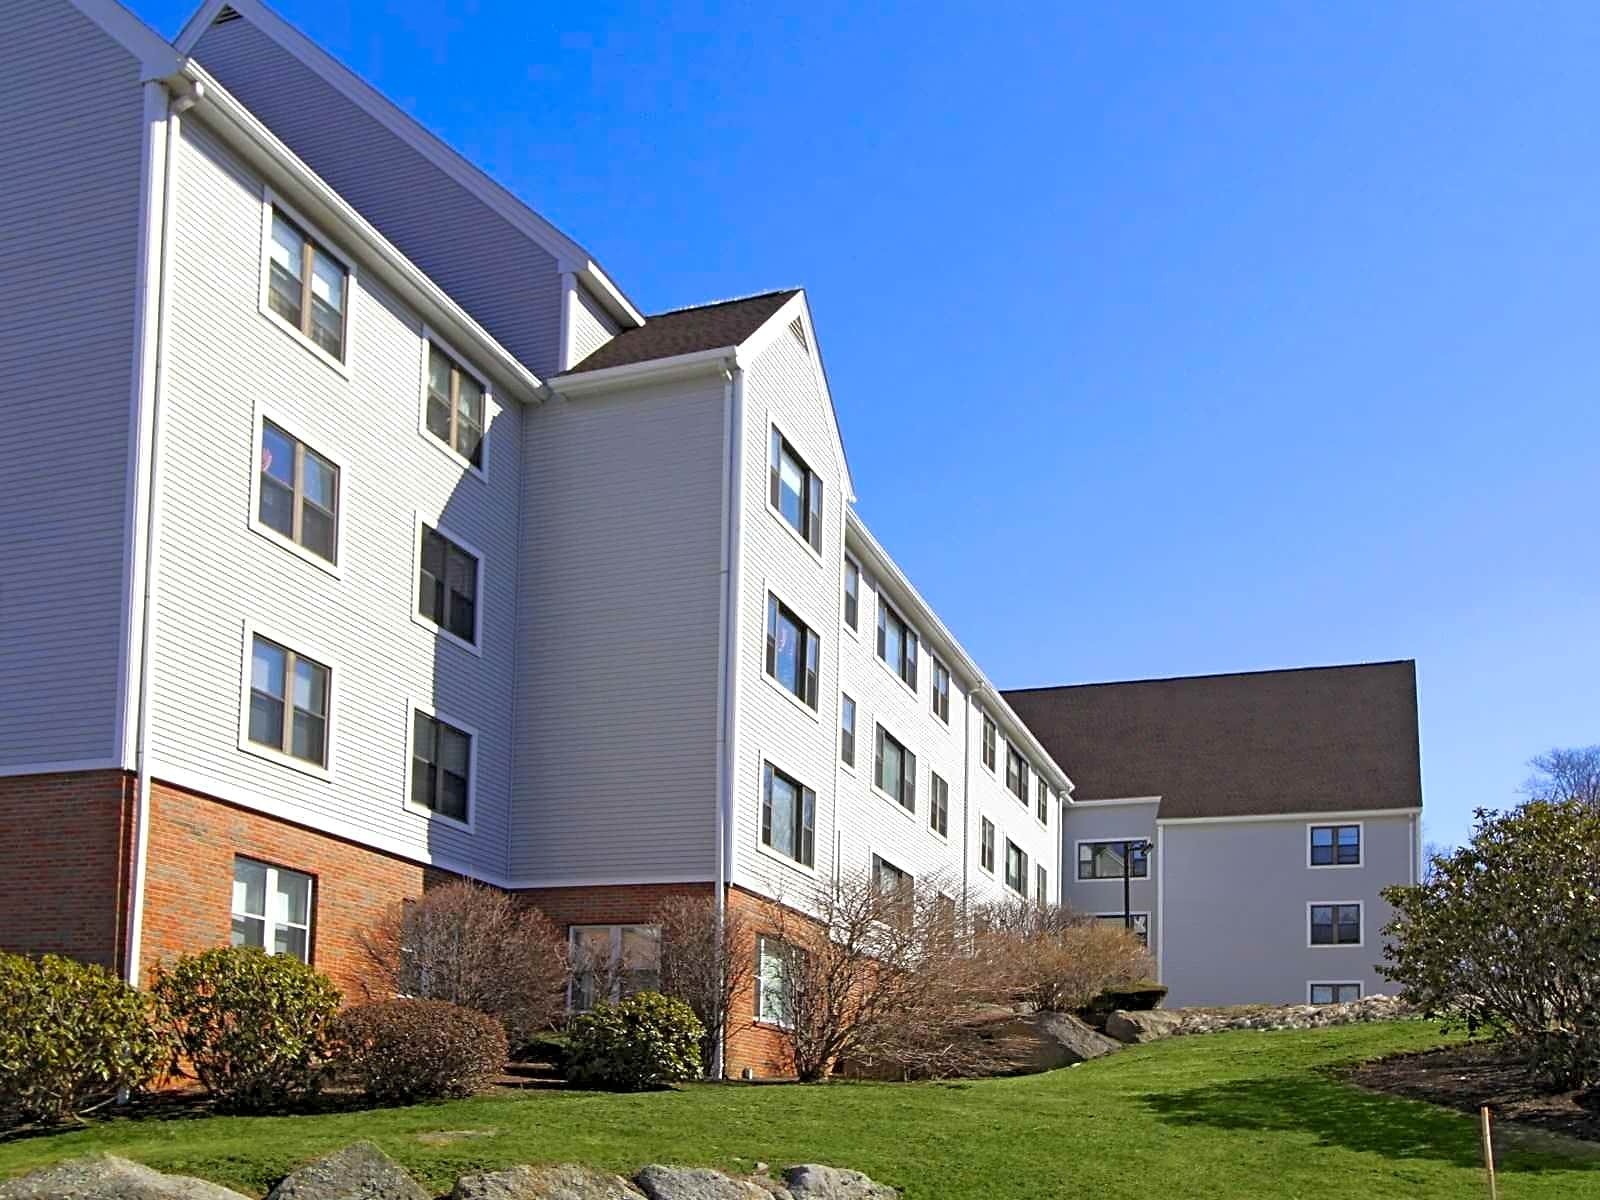 Apartments Near UMass-Dartmouth Ships Watch Apartments for University of Massachusetts Dartmouth Students in North Dartmouth, MA